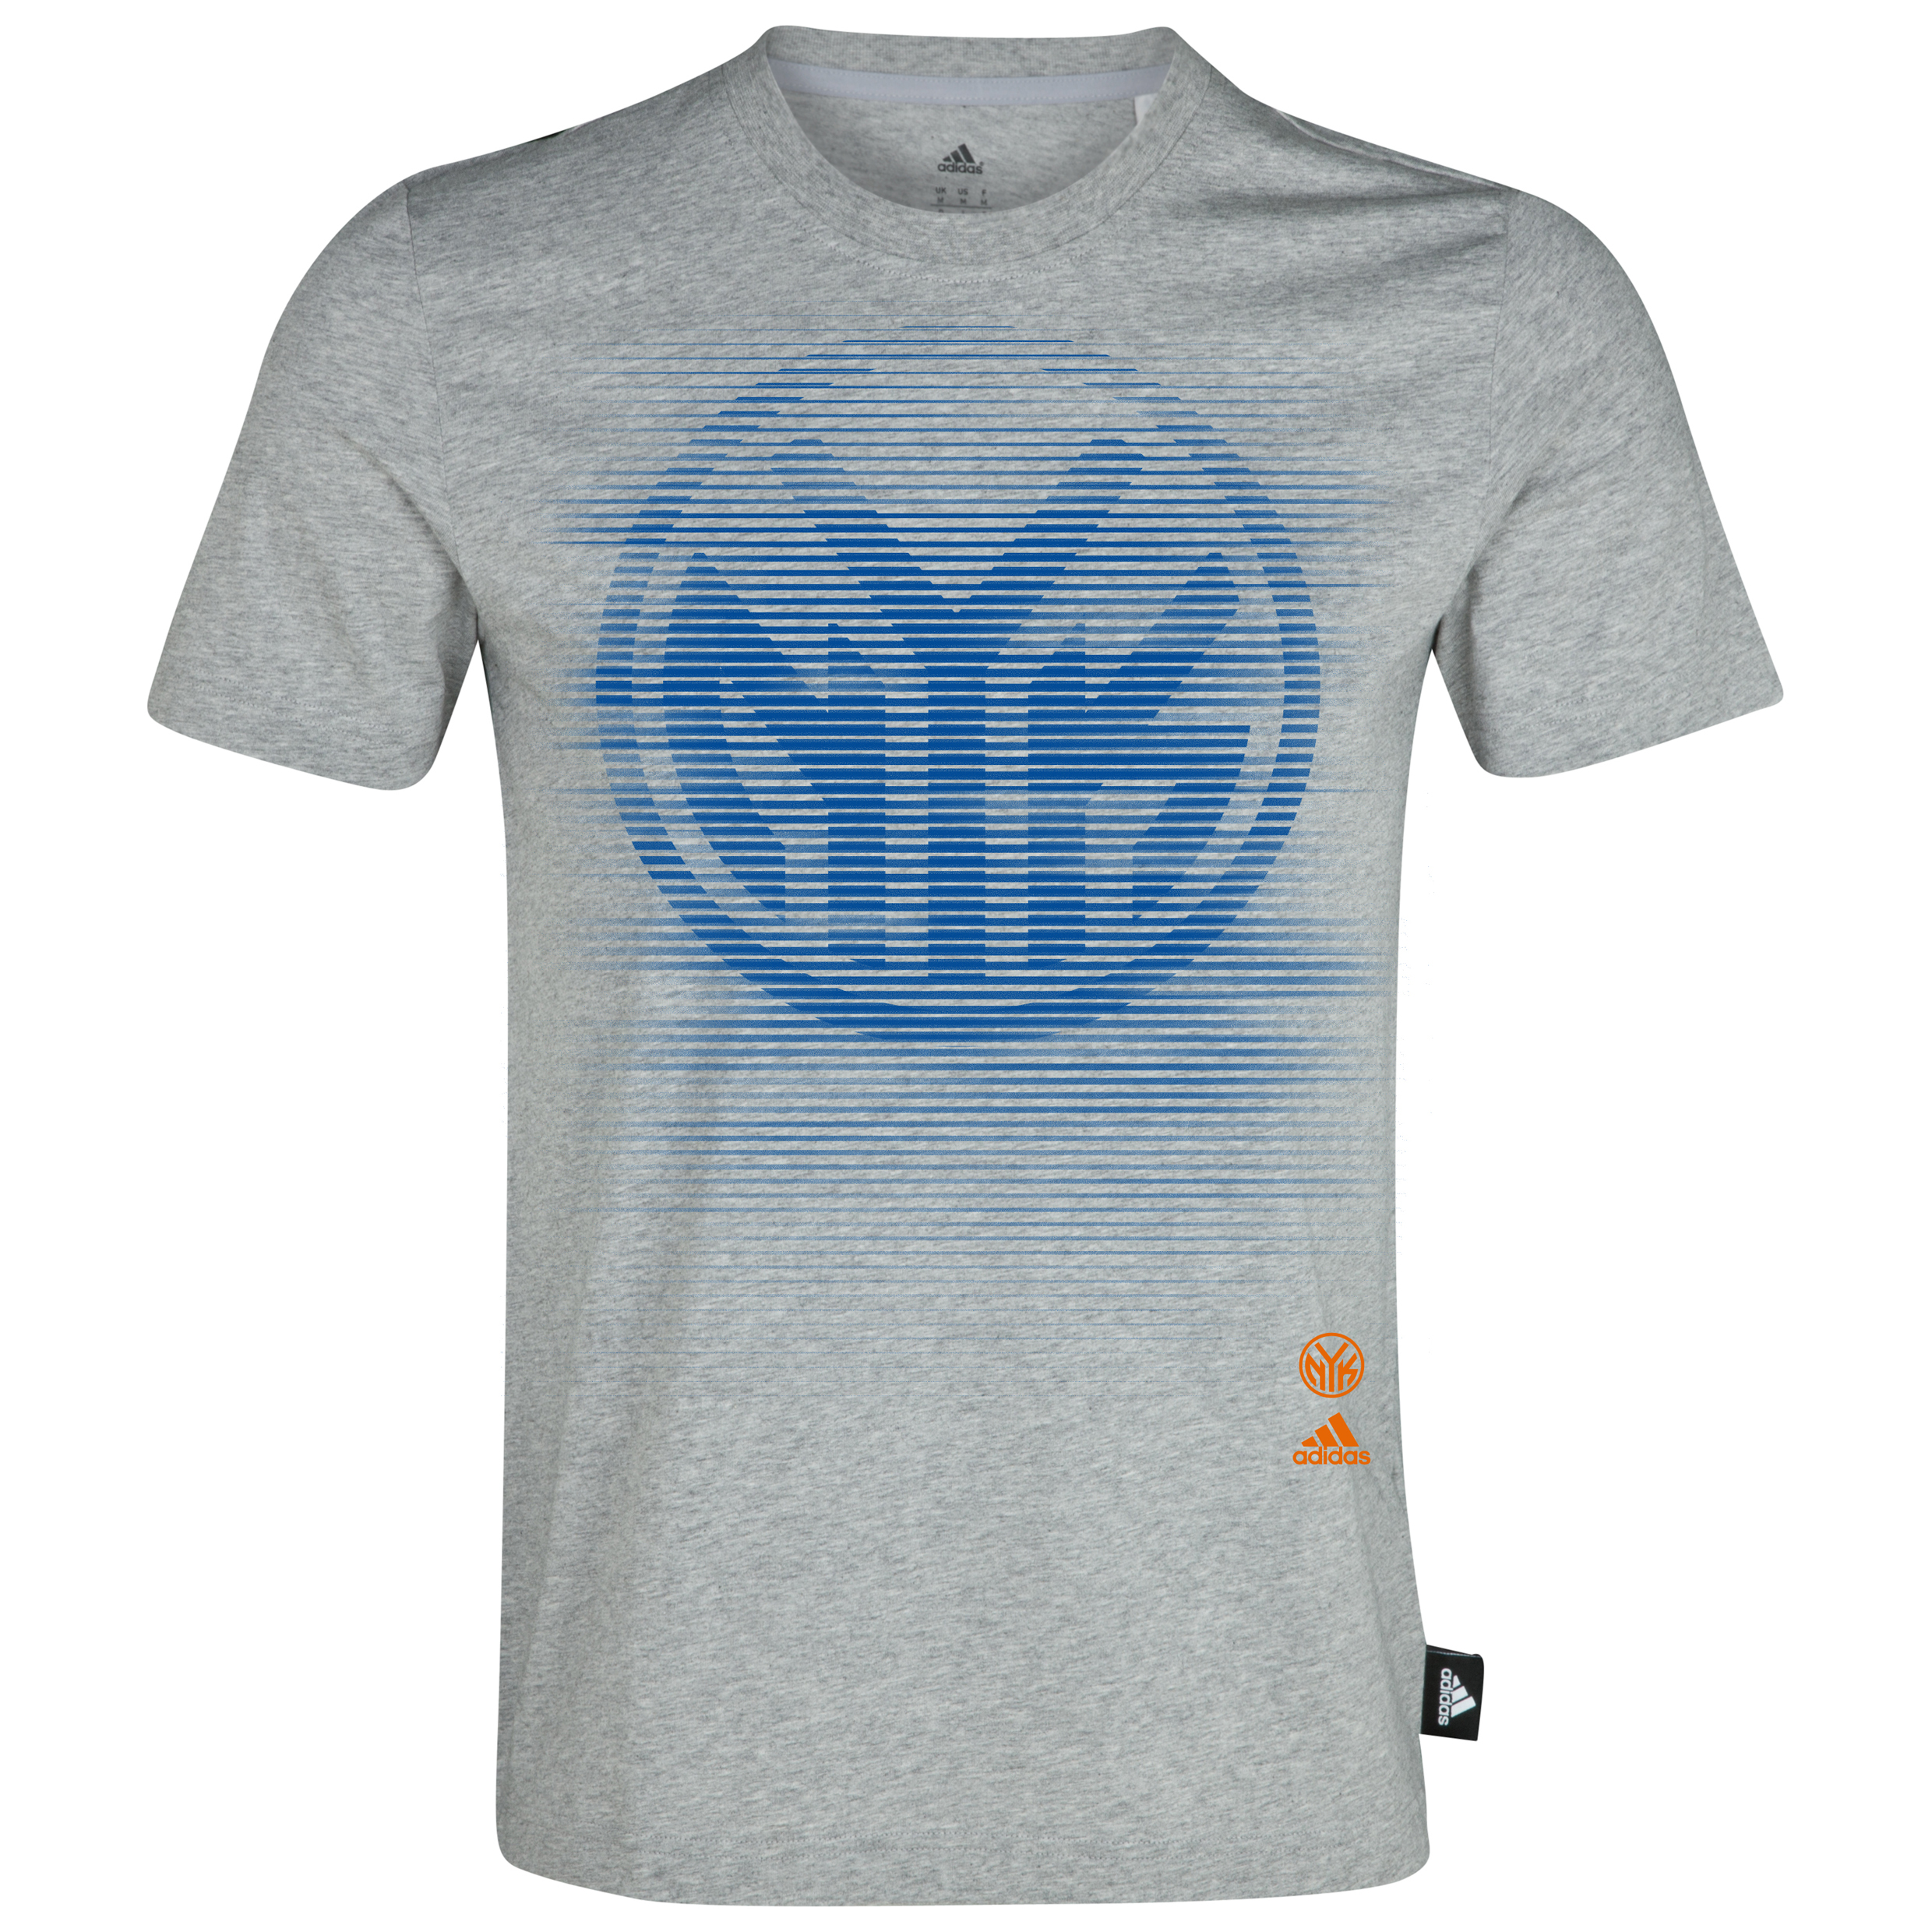 New York Knicks adidas Stripe Fade T-Shirt Grey